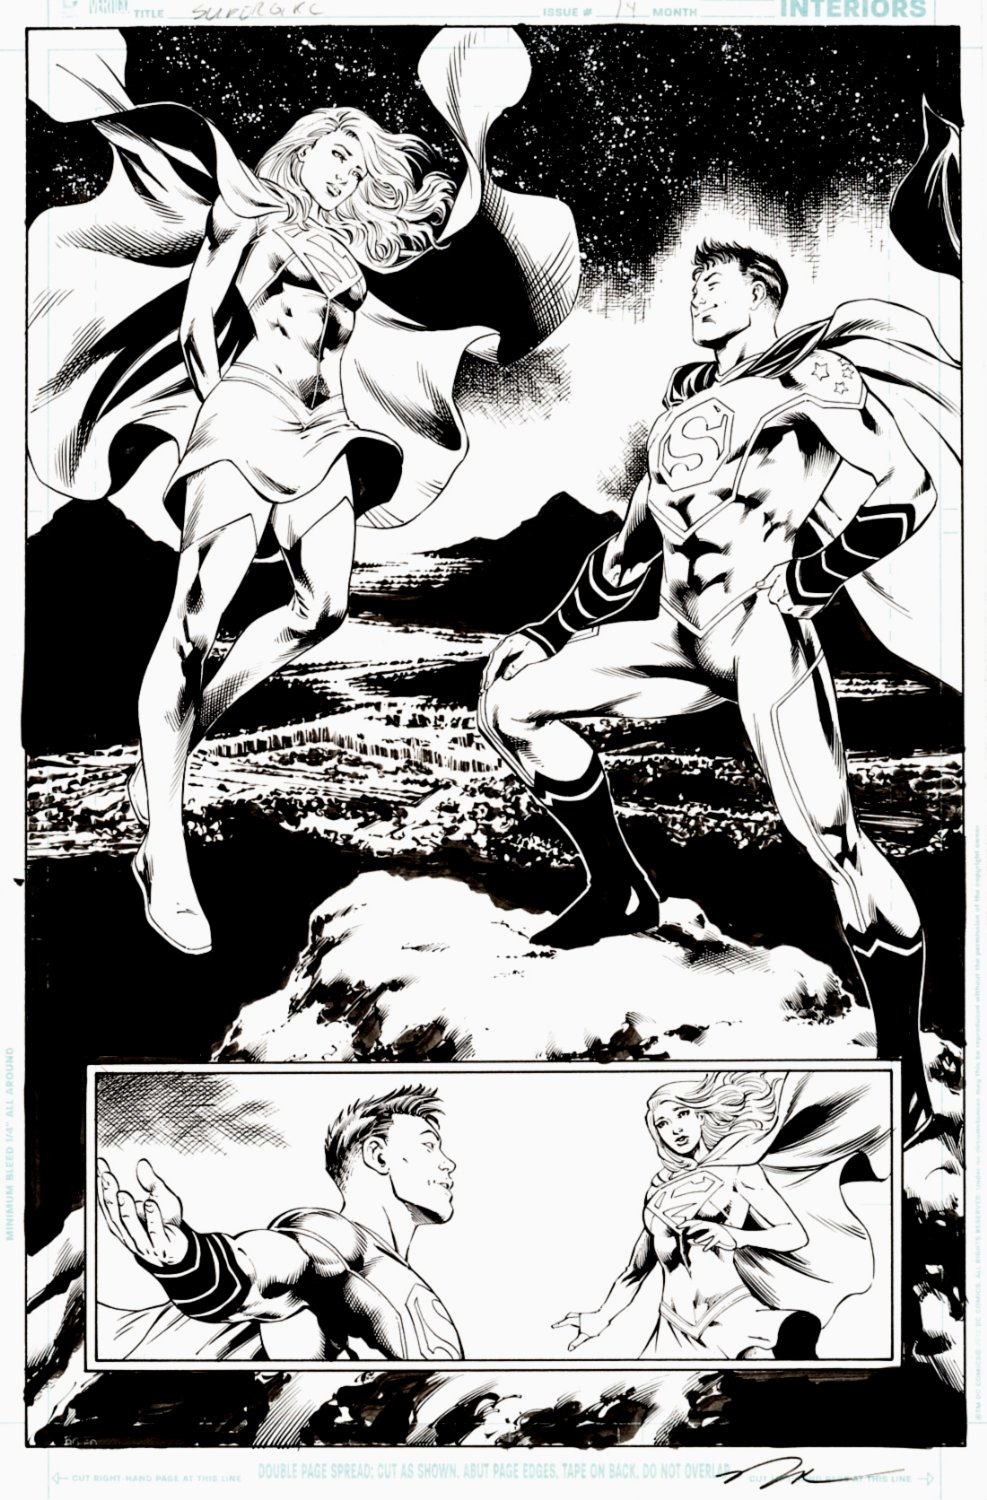 Supergirl #14 Splash (SOLD LIVE ON 'DUELING DEALERS OF COMIC ART' EPISODE #39 PODCAST ON 10-4-2021(RE-WATCH THIS FUNNY ART SELLING SHOW HERE)